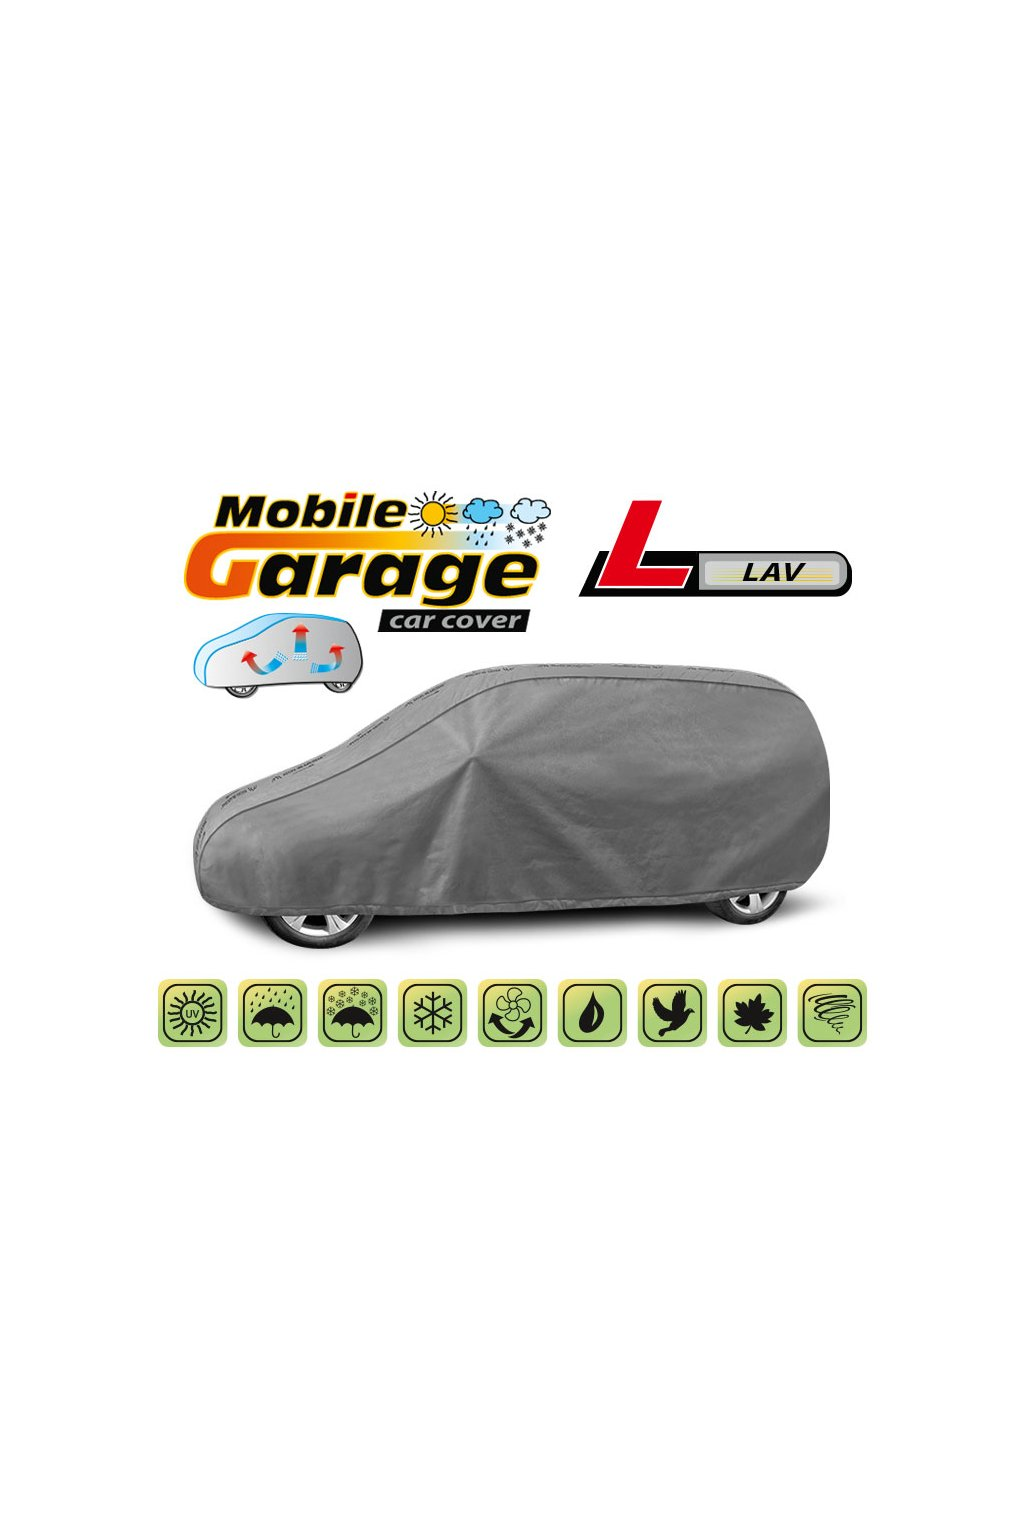 mobile garage L lav 3 art 5 4136 248 3020